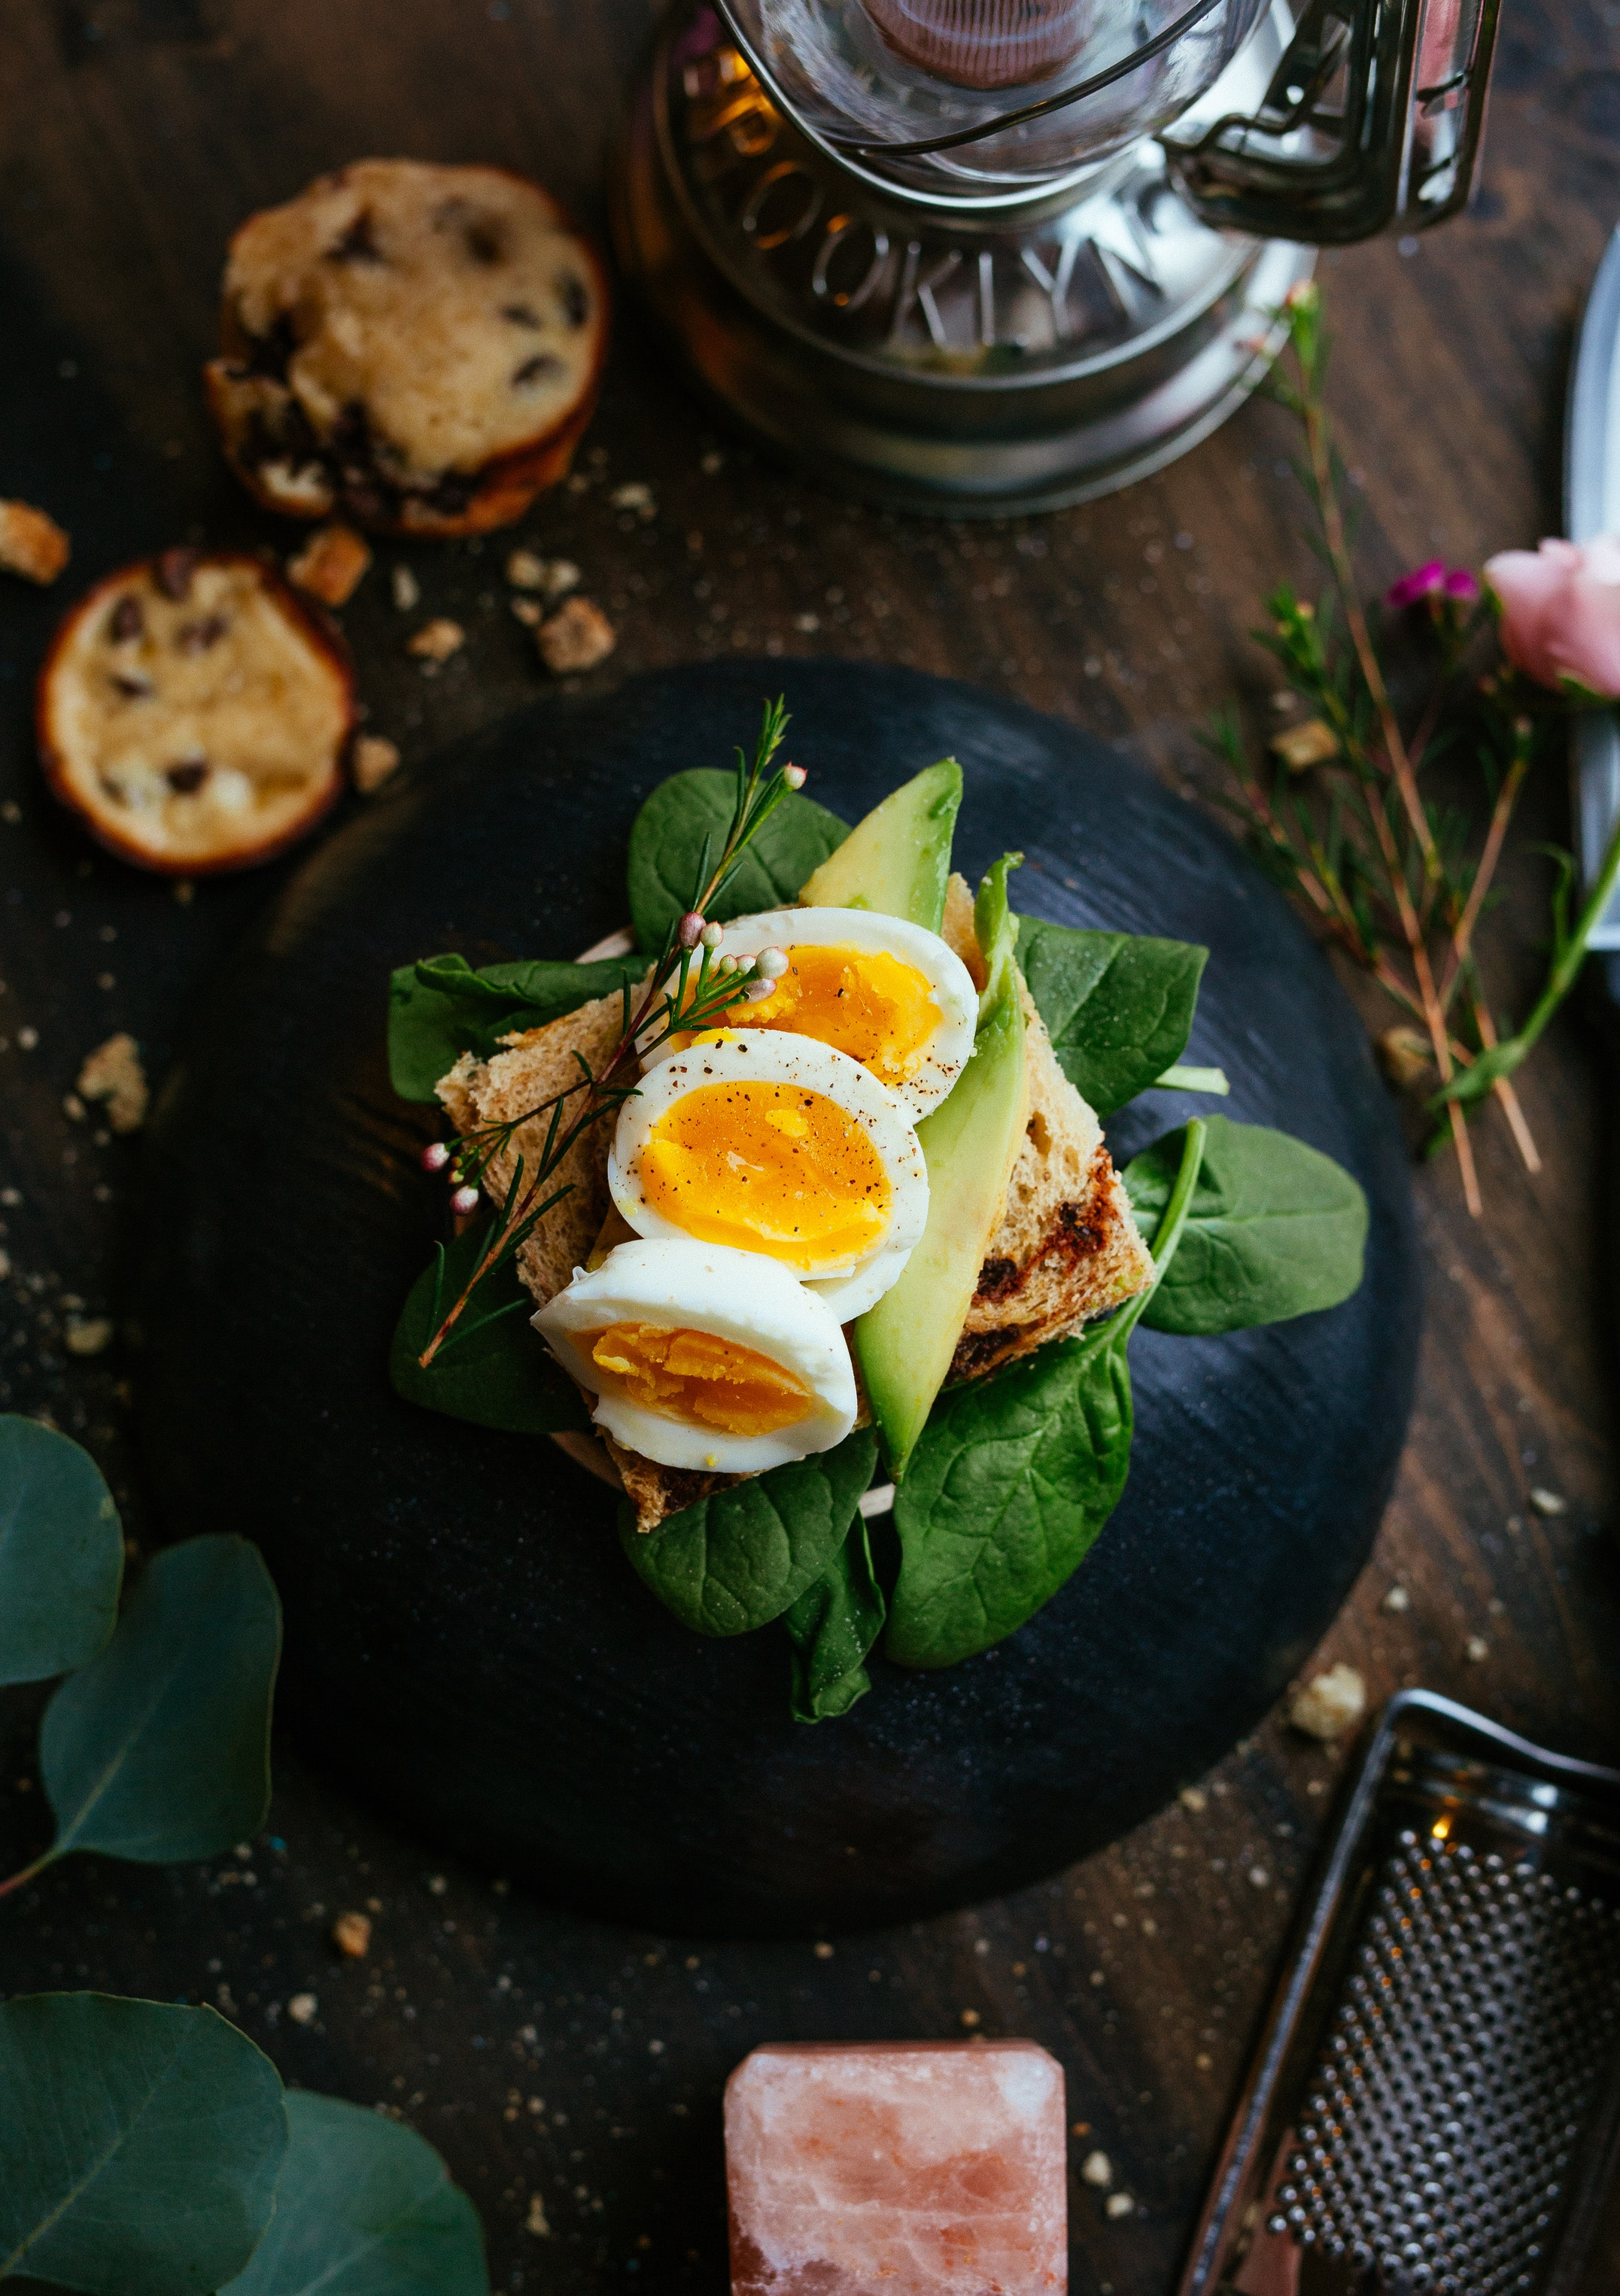 The_love_for_healthy_food_4